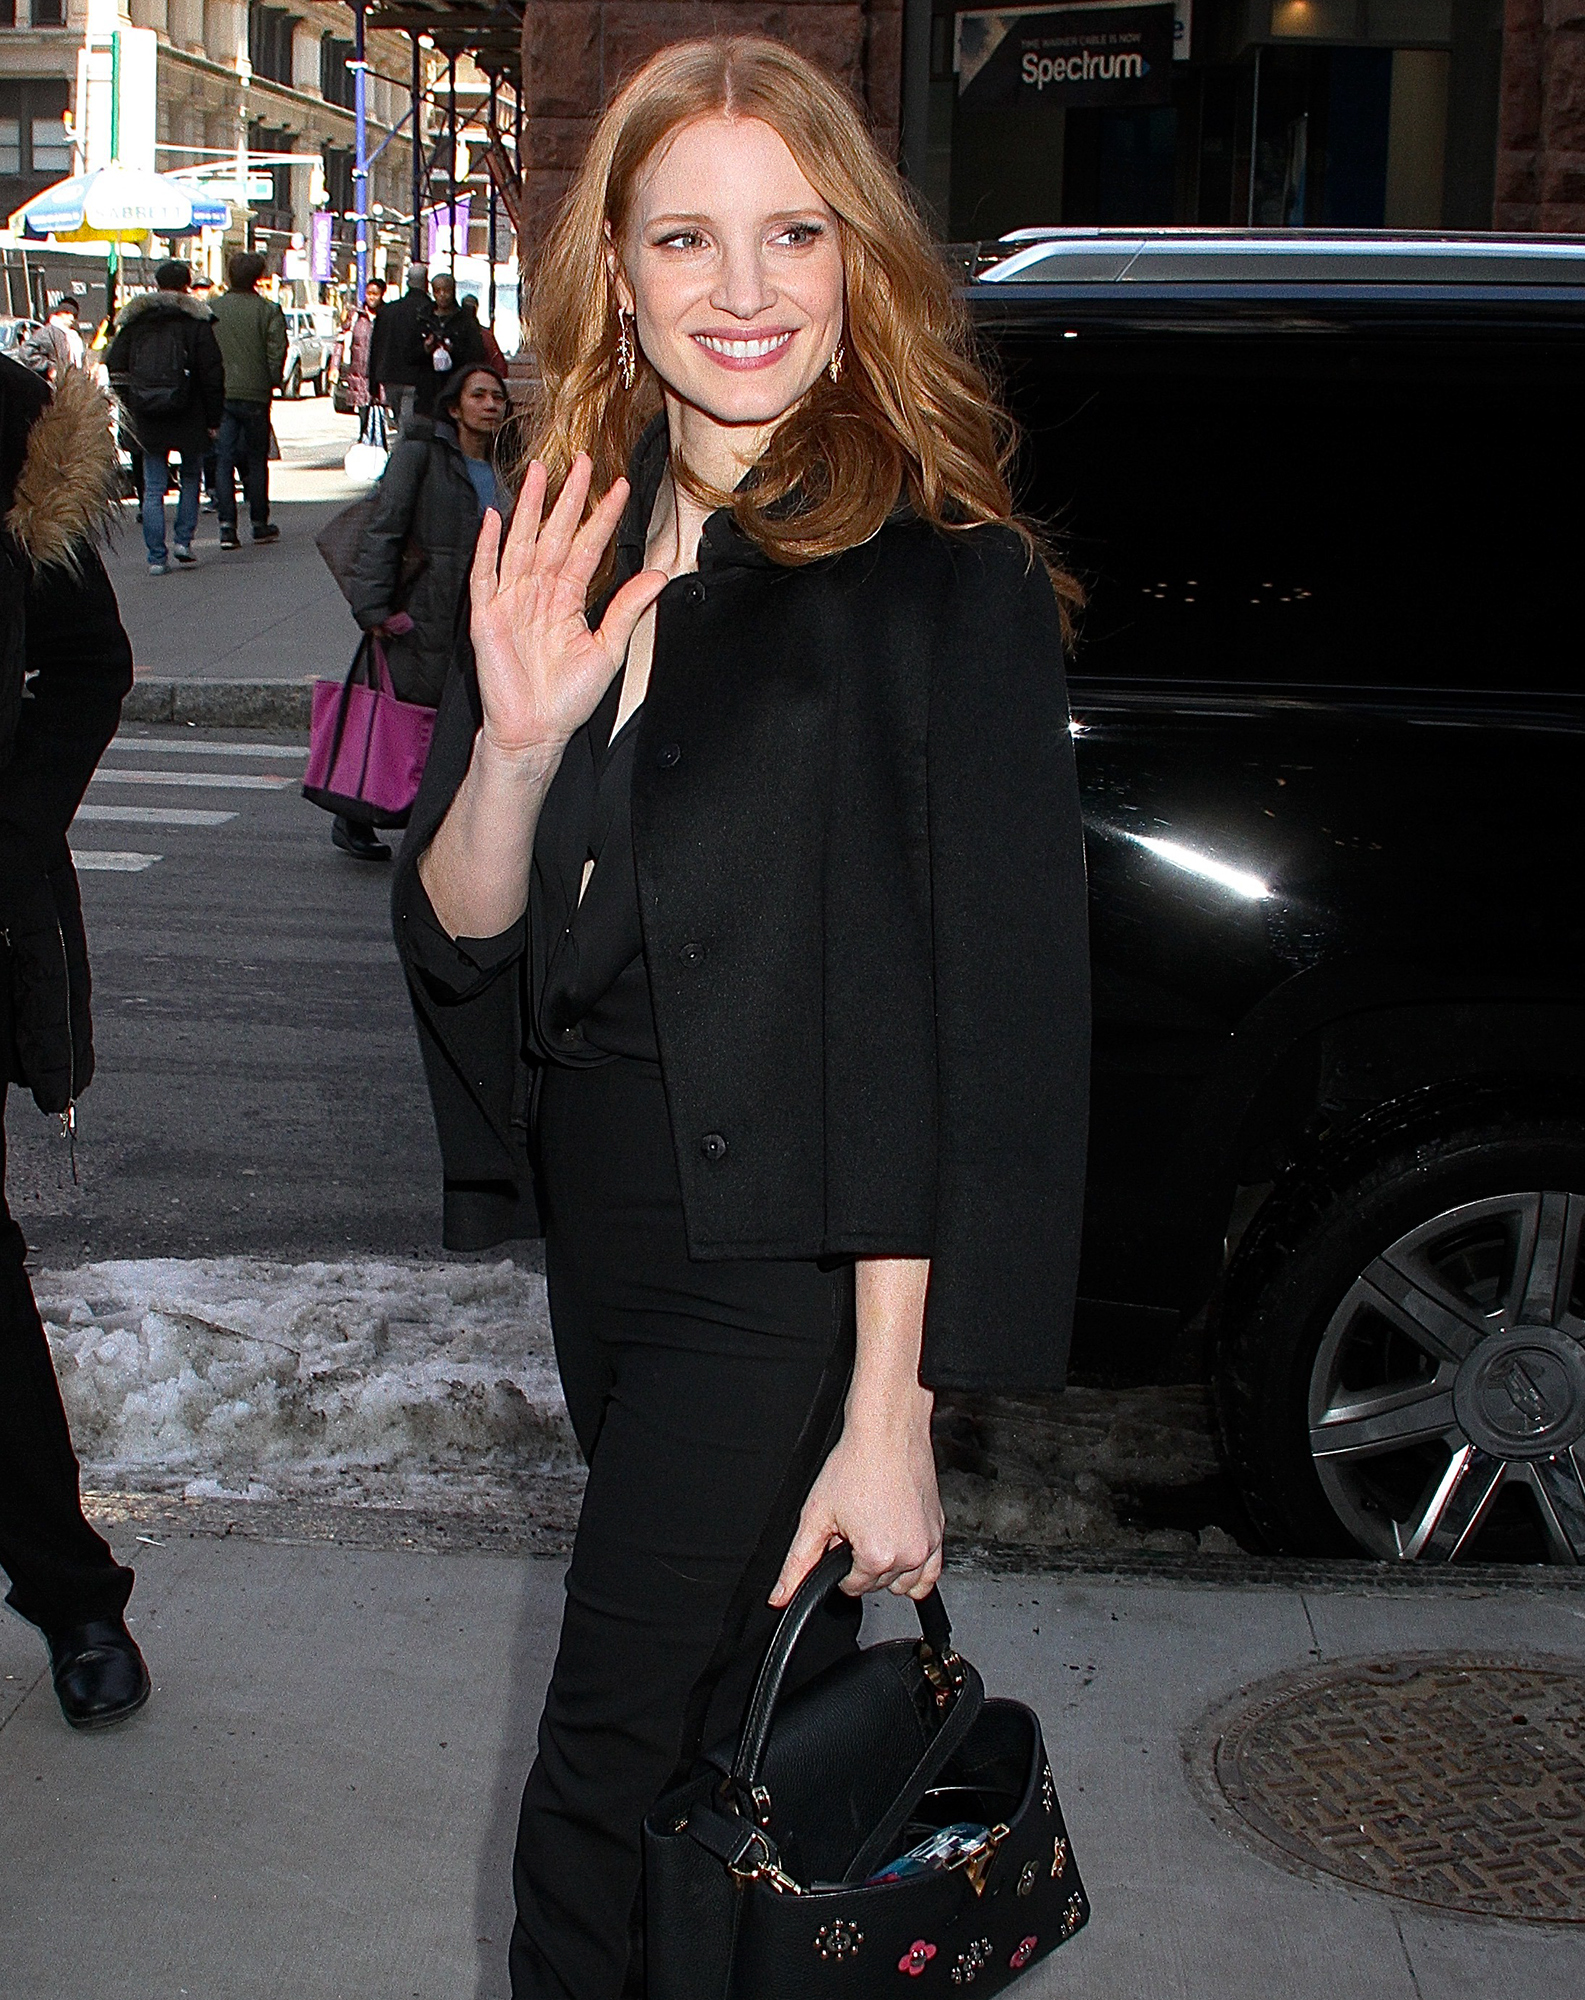 'The Zookeeper's Wife' star Jessica Chastain spotted arriving at 'AOL Build' in NYC